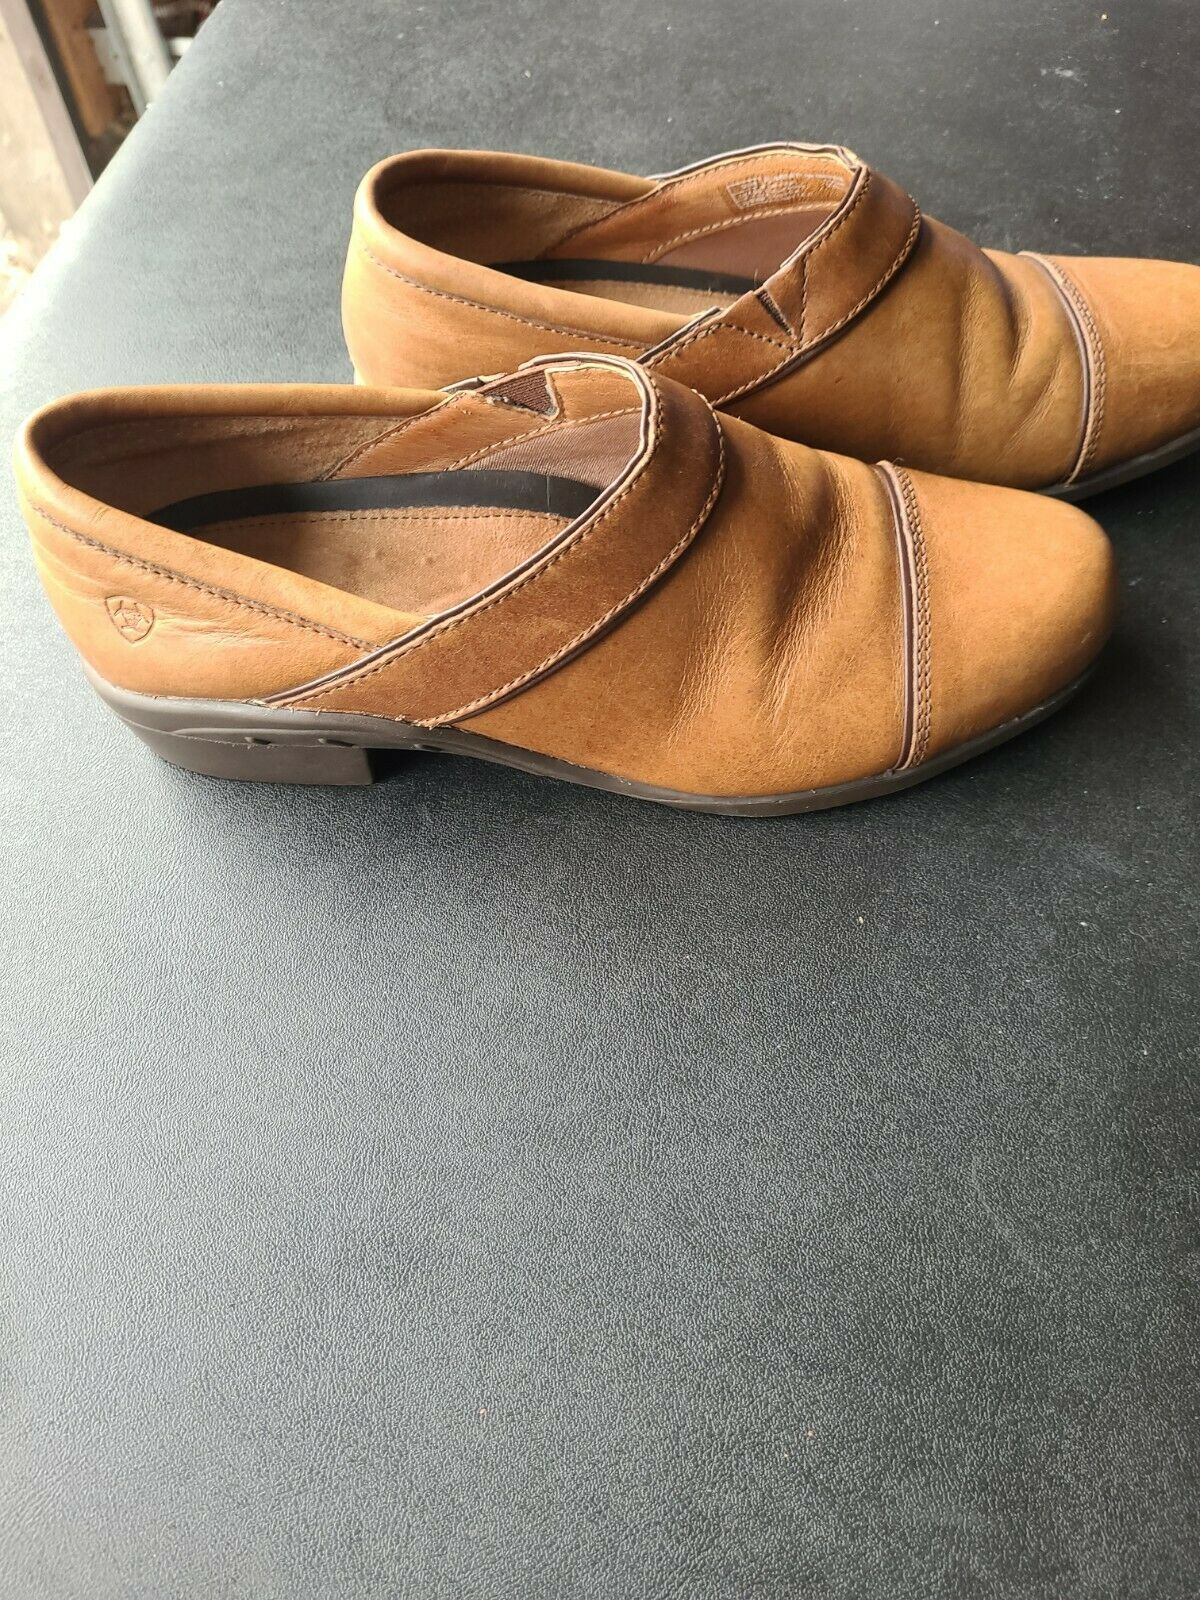 Womans Ariat Leather Tan Clogs Size 9b 65213